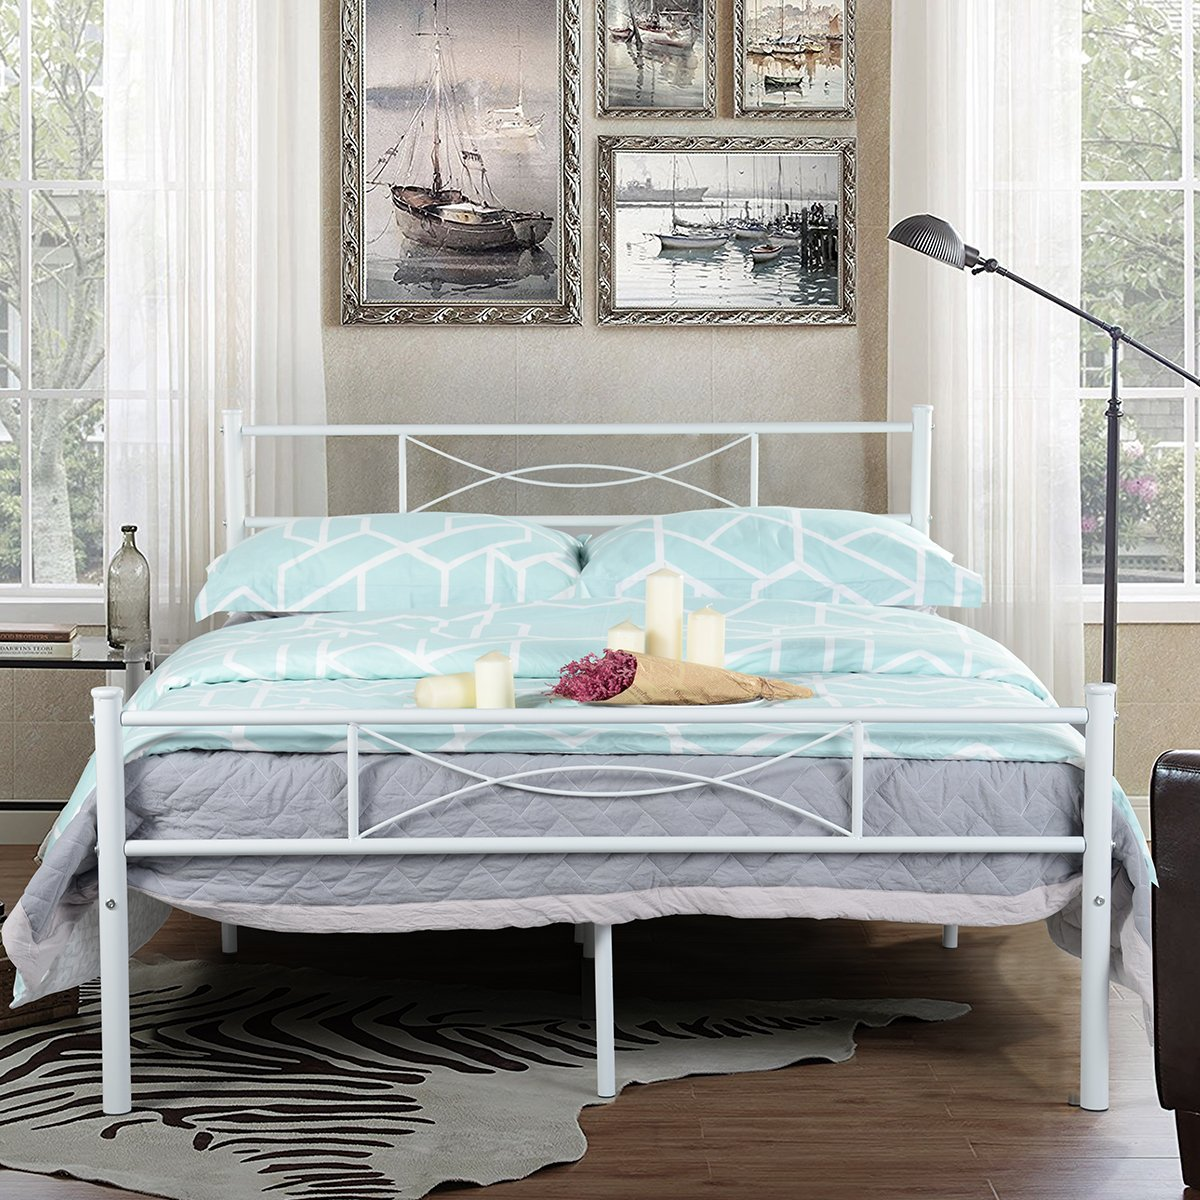 White Platform Bed Without Headboard Simlife Metal Bed Frame Full Size 10 Legs Two Headboards Mattress